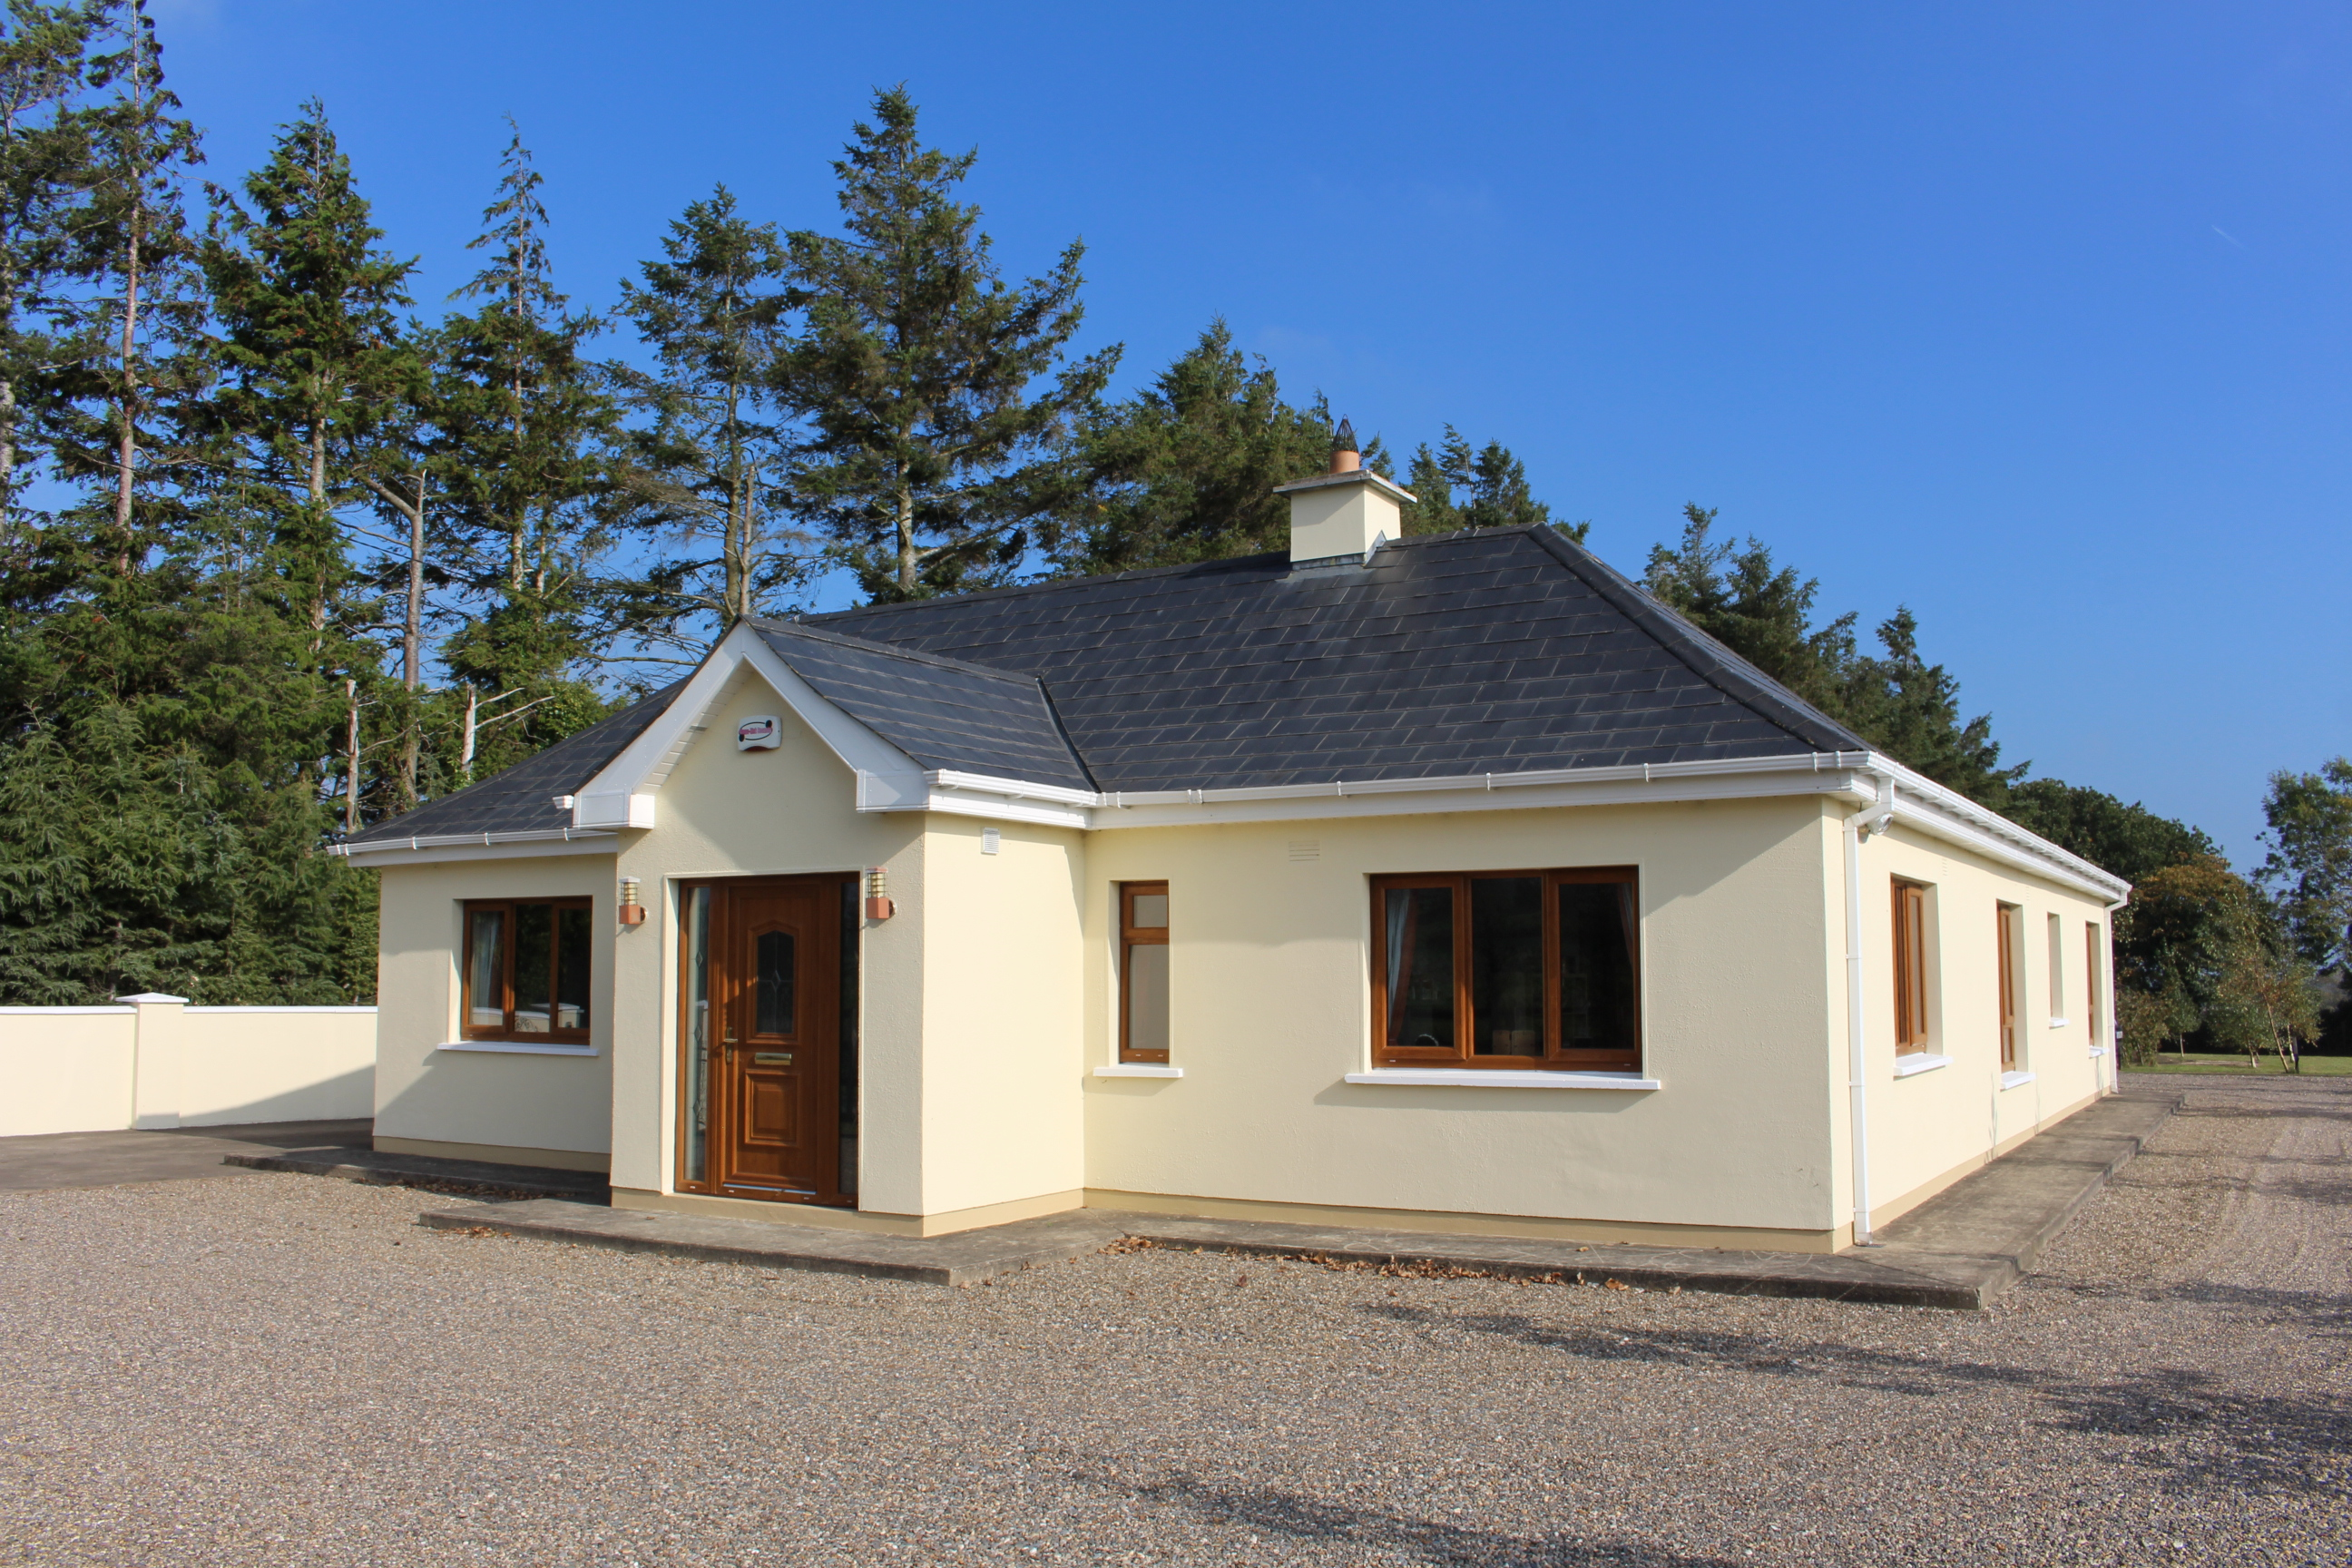 Property of the Week: Raheenaskeagh, Oulart, Gorey